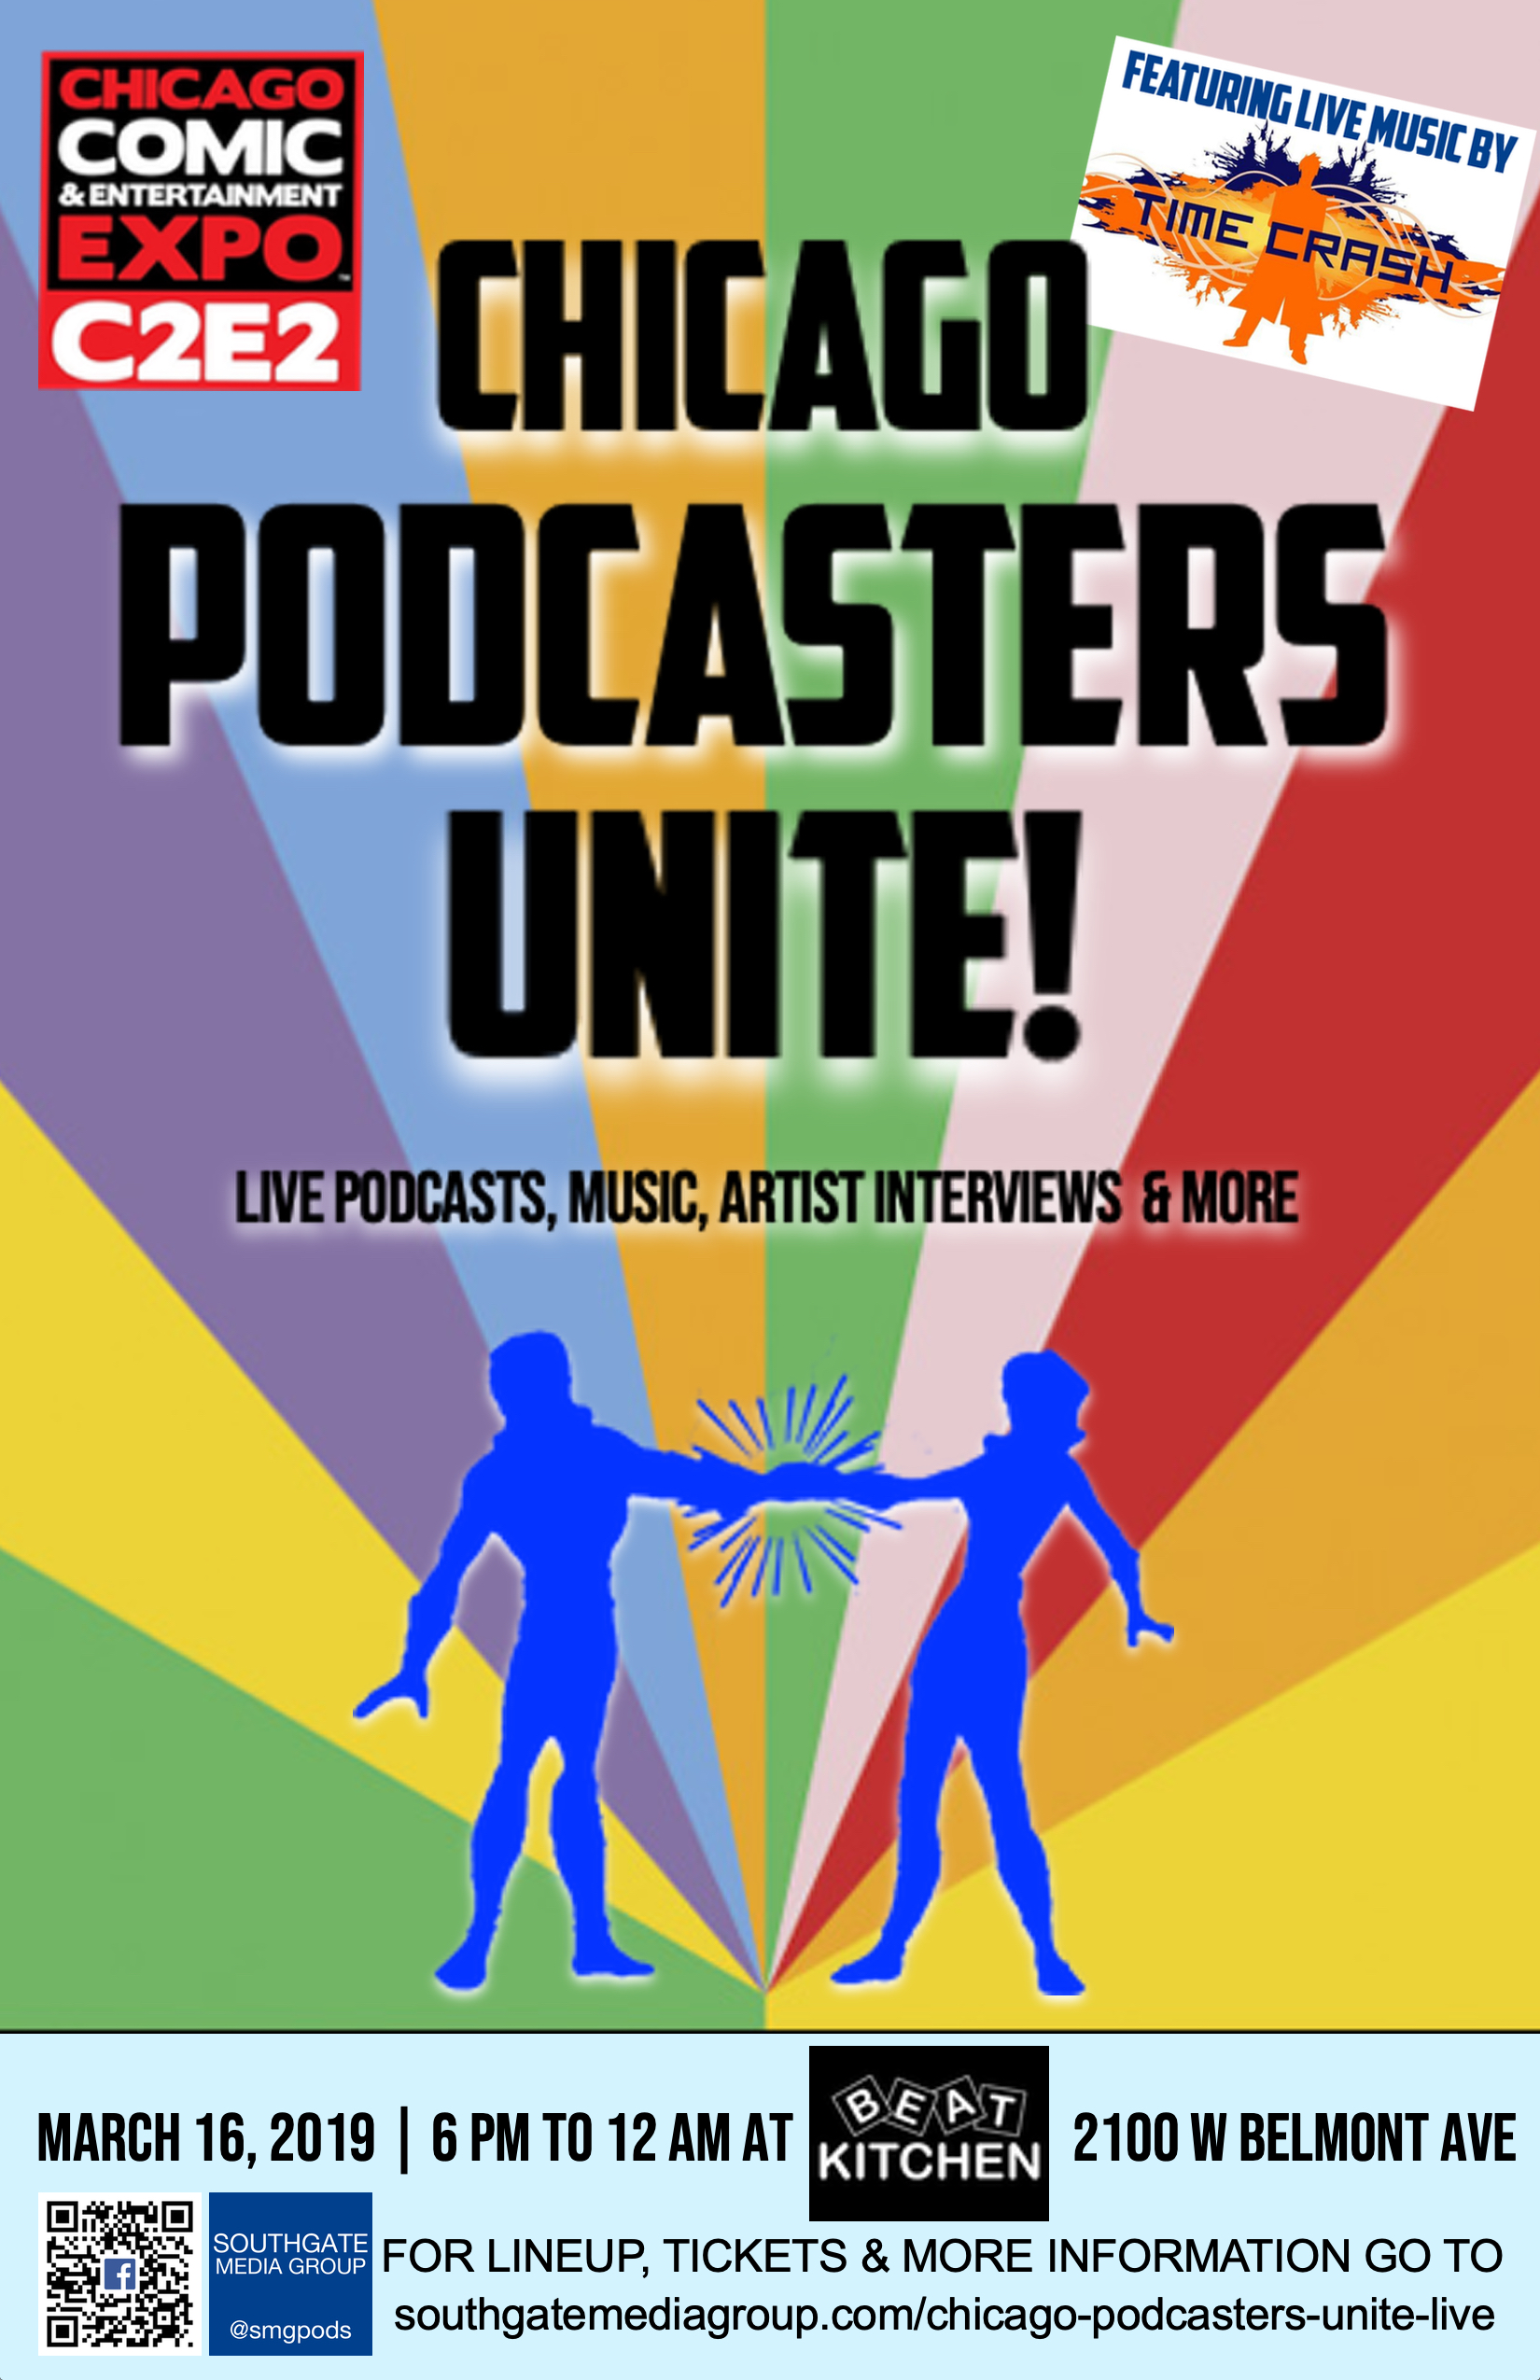 c2e2 Blue Chicago Podcasters Unite 11X17 POSTER C.jpg